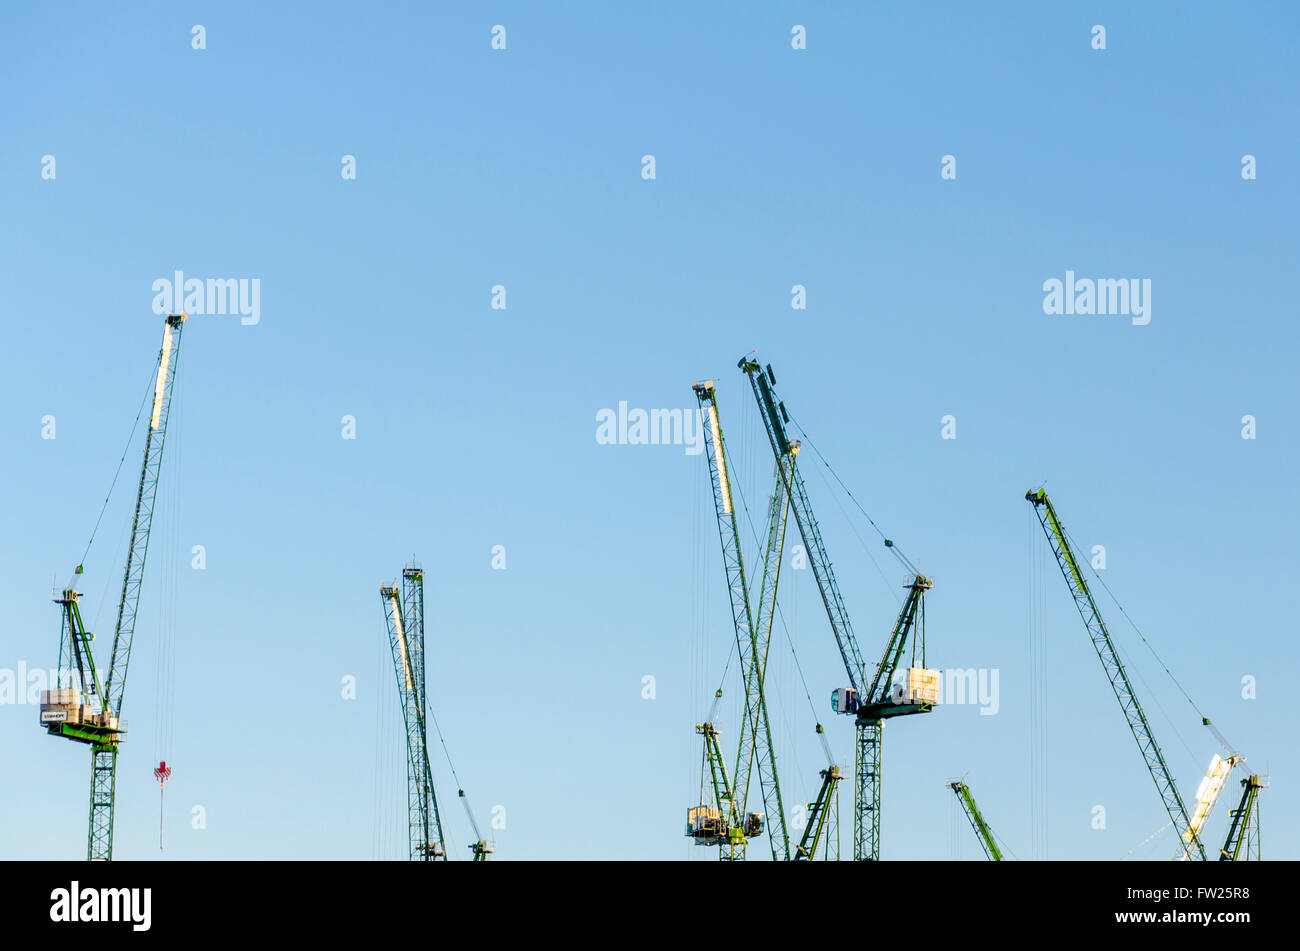 A view of the top of cranes in London. crane, cranes, sky, blue, UK, England, Britain, tops, view, skyline, construction, - Stock Image